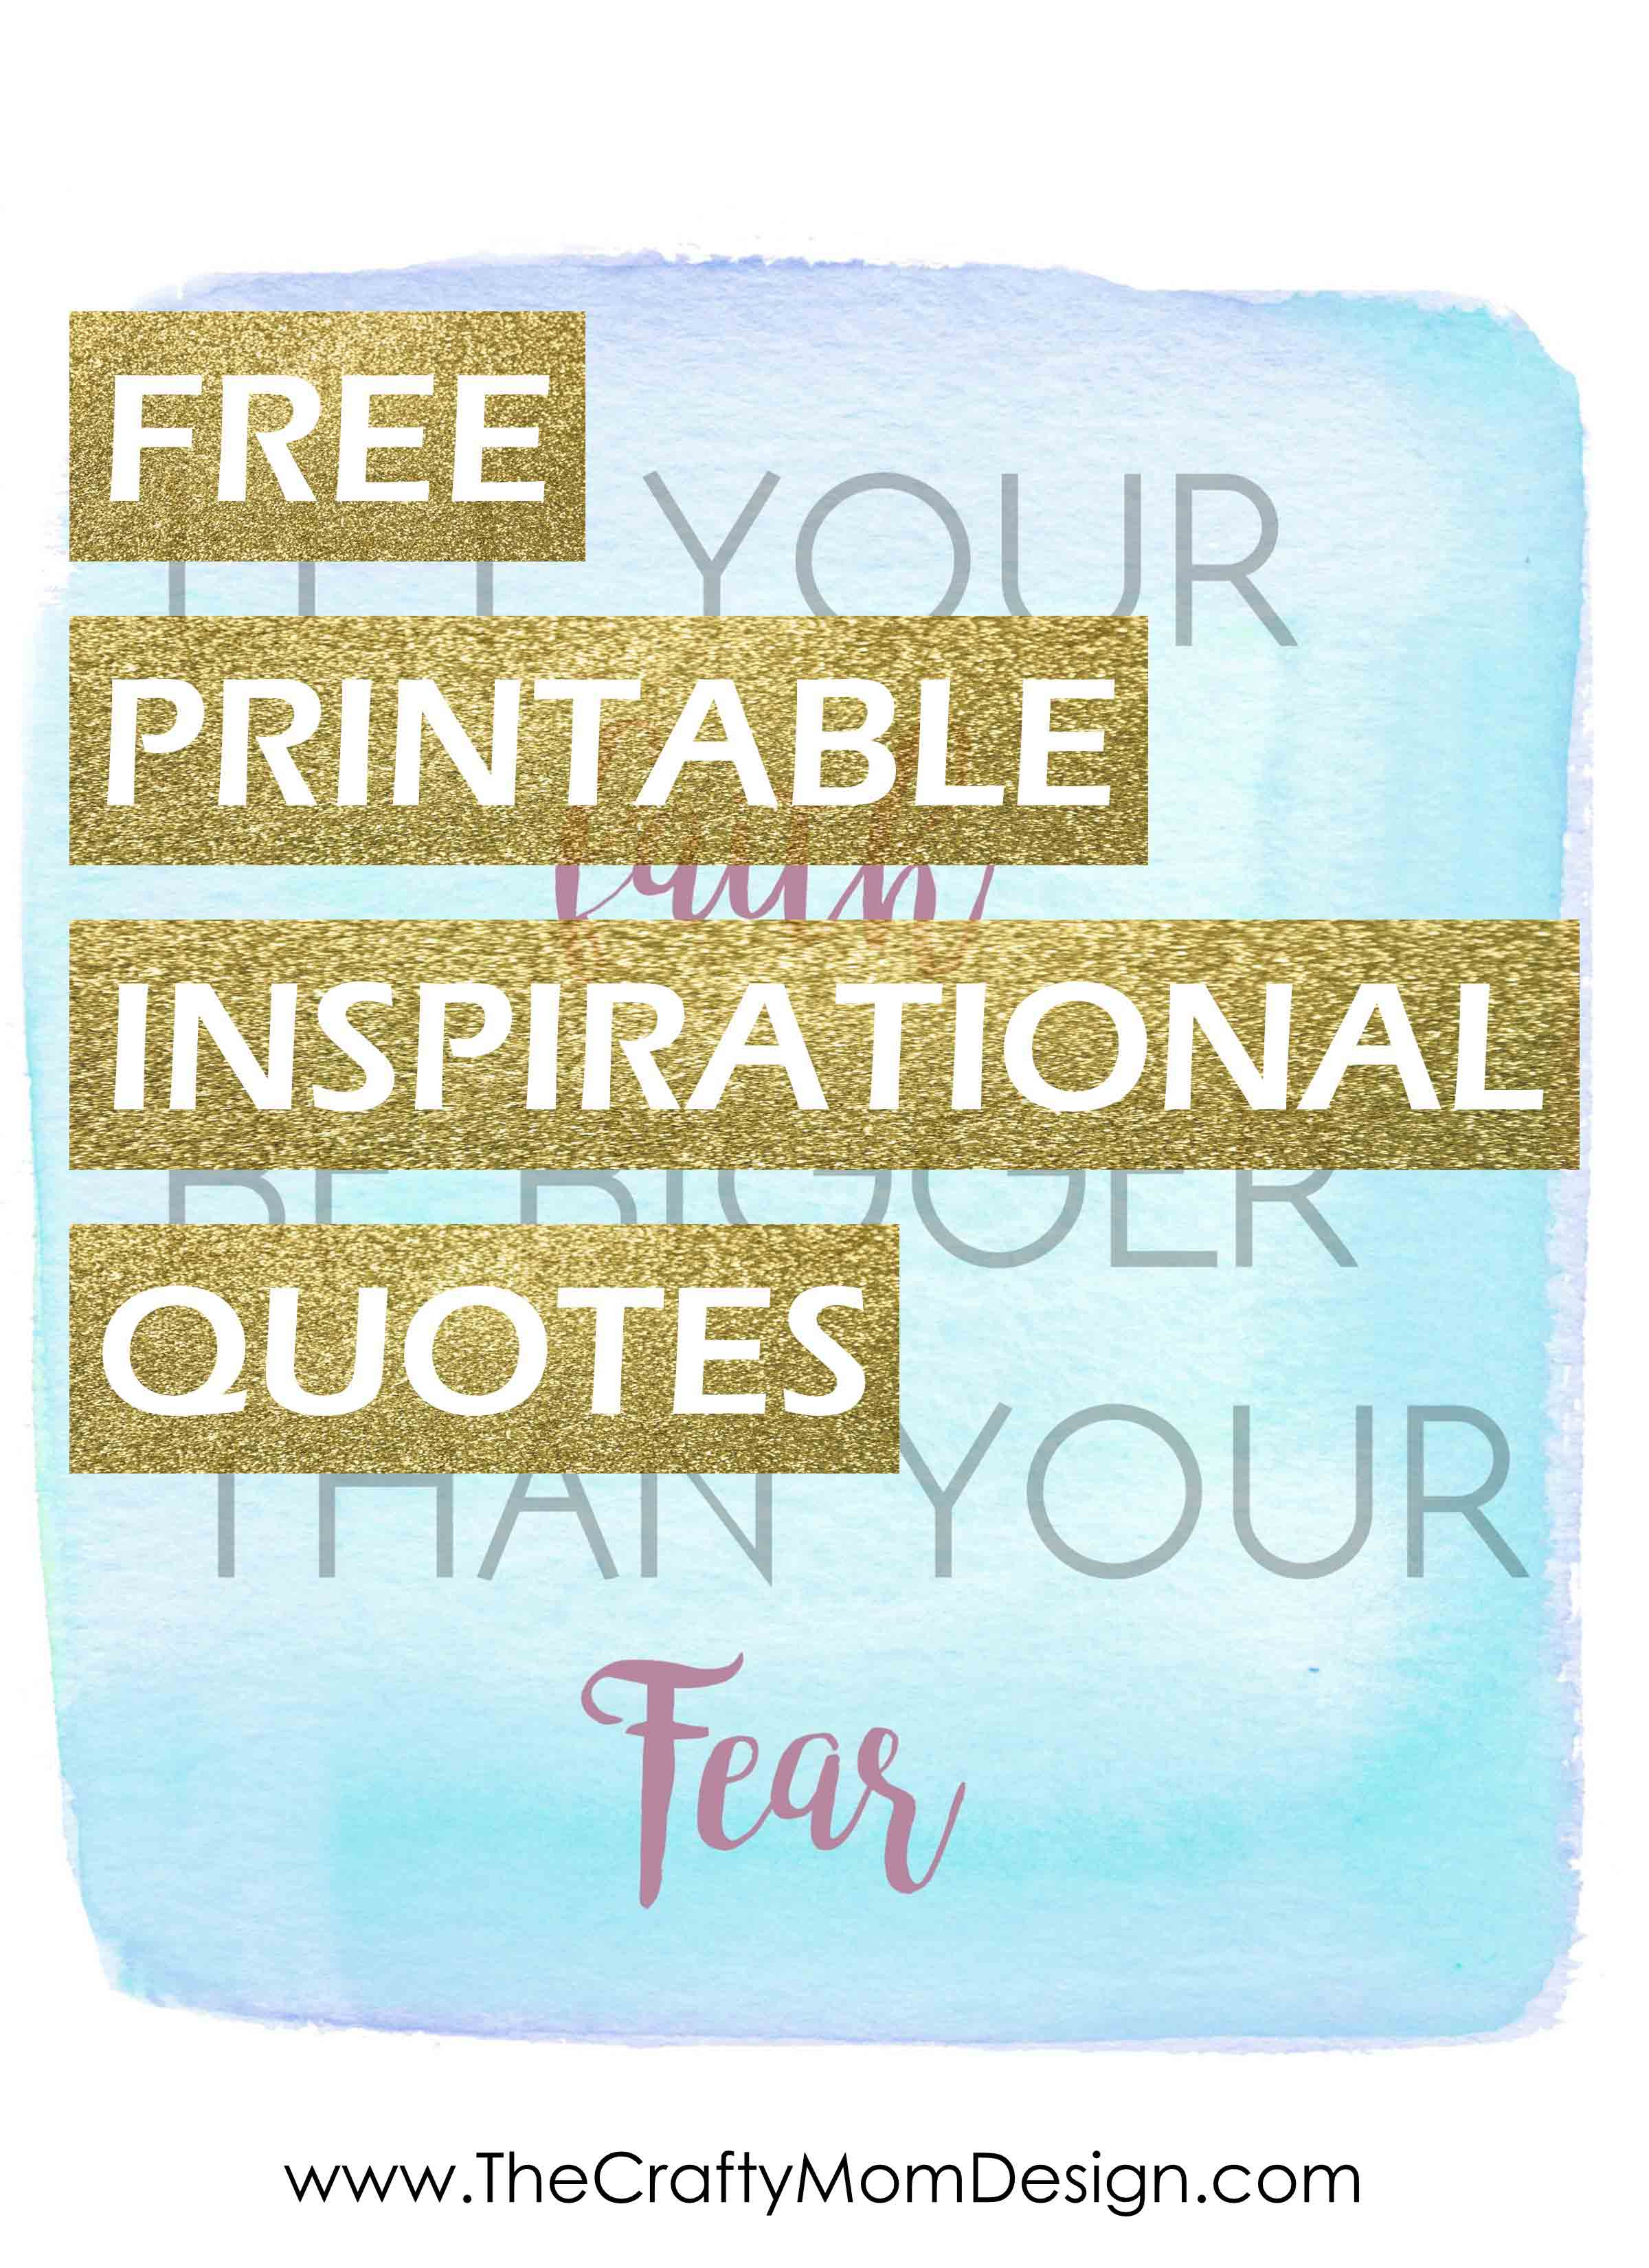 Free Printable Inspirational Quotes • The Crafty Mom Design - Free Printable Quotes Templates